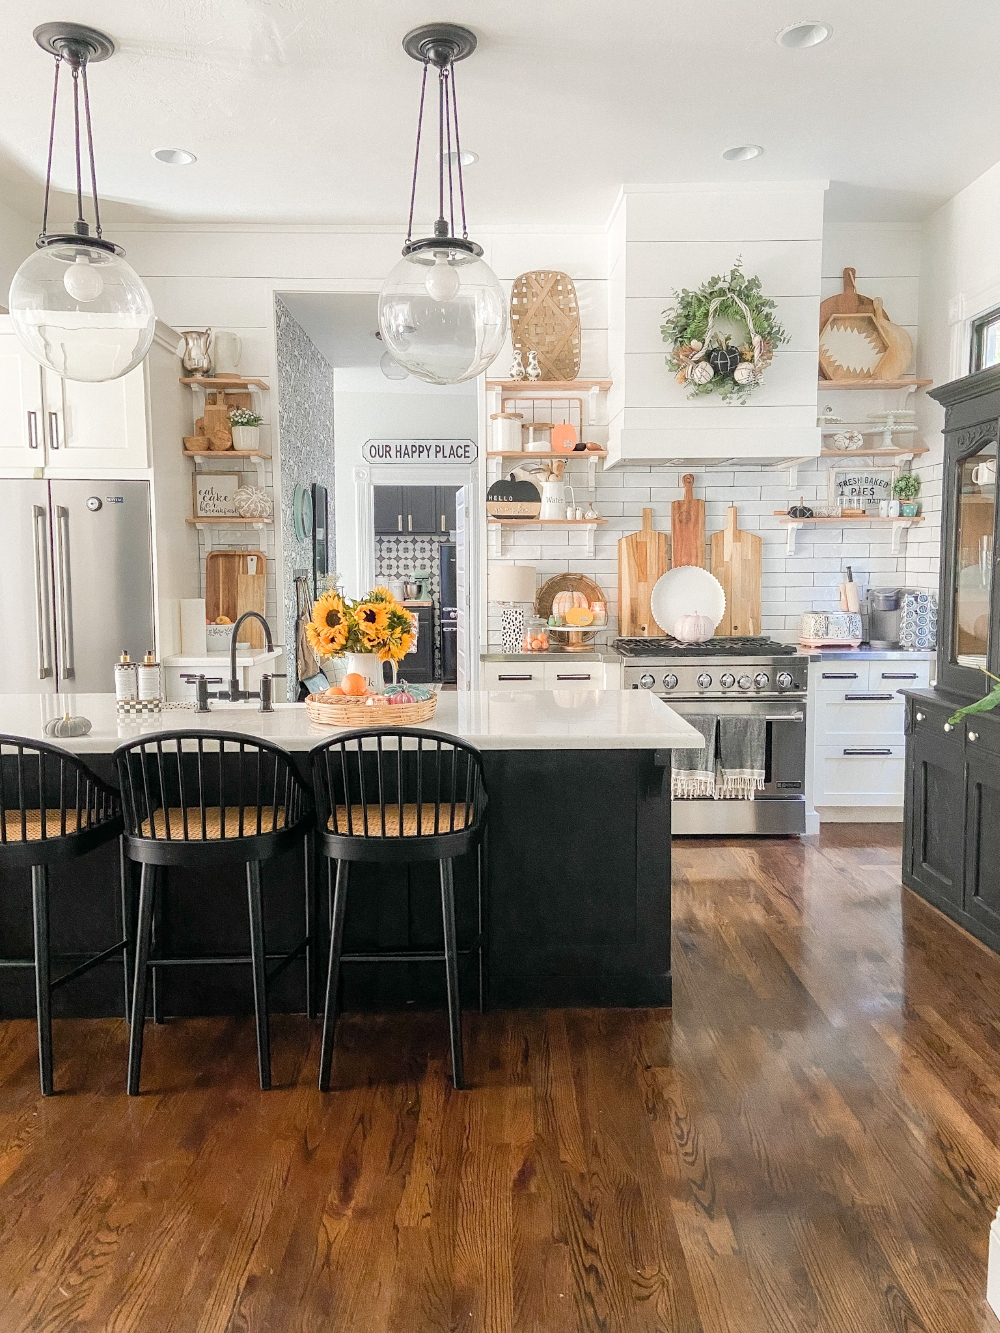 Boho Cottage Fall Decorating Ideas. How to add warm and relaxing fall touches to your home with a few DIY projects and decorating ideas!